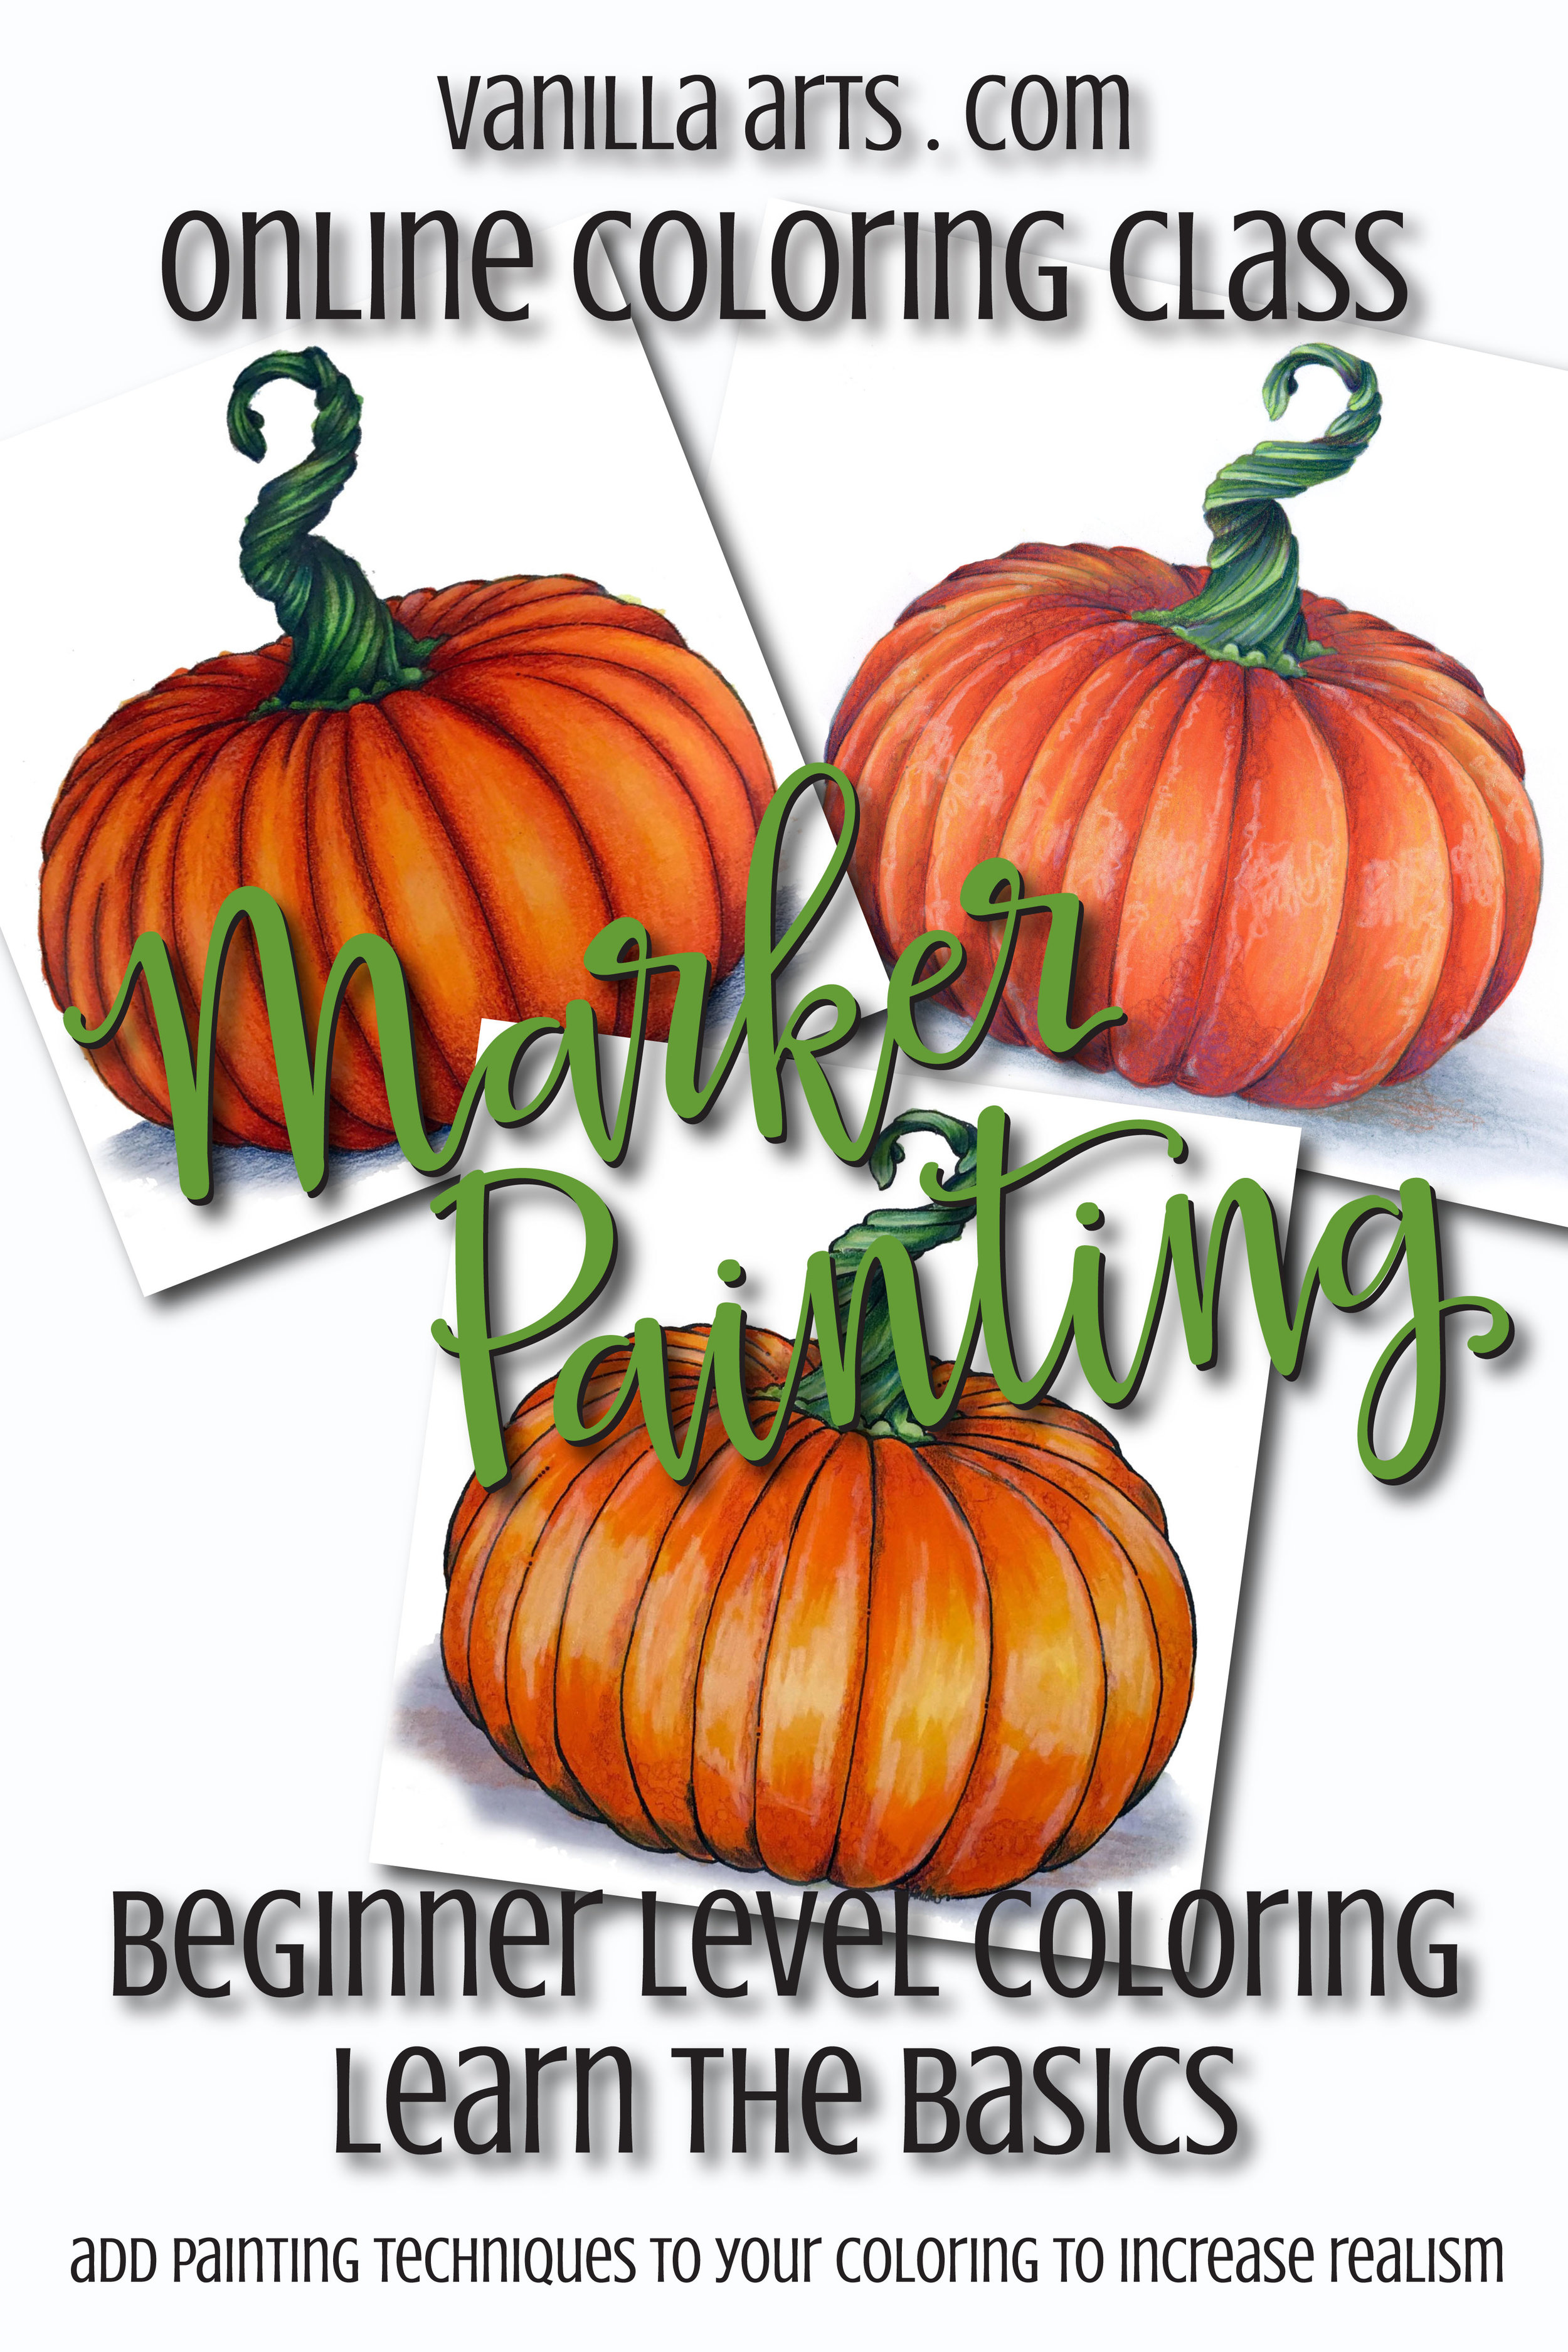 Beginner level Copic Marker classes. Marker Painting Basics helps you add realistic depth and dimension to your coloring.   VanillaArts.com